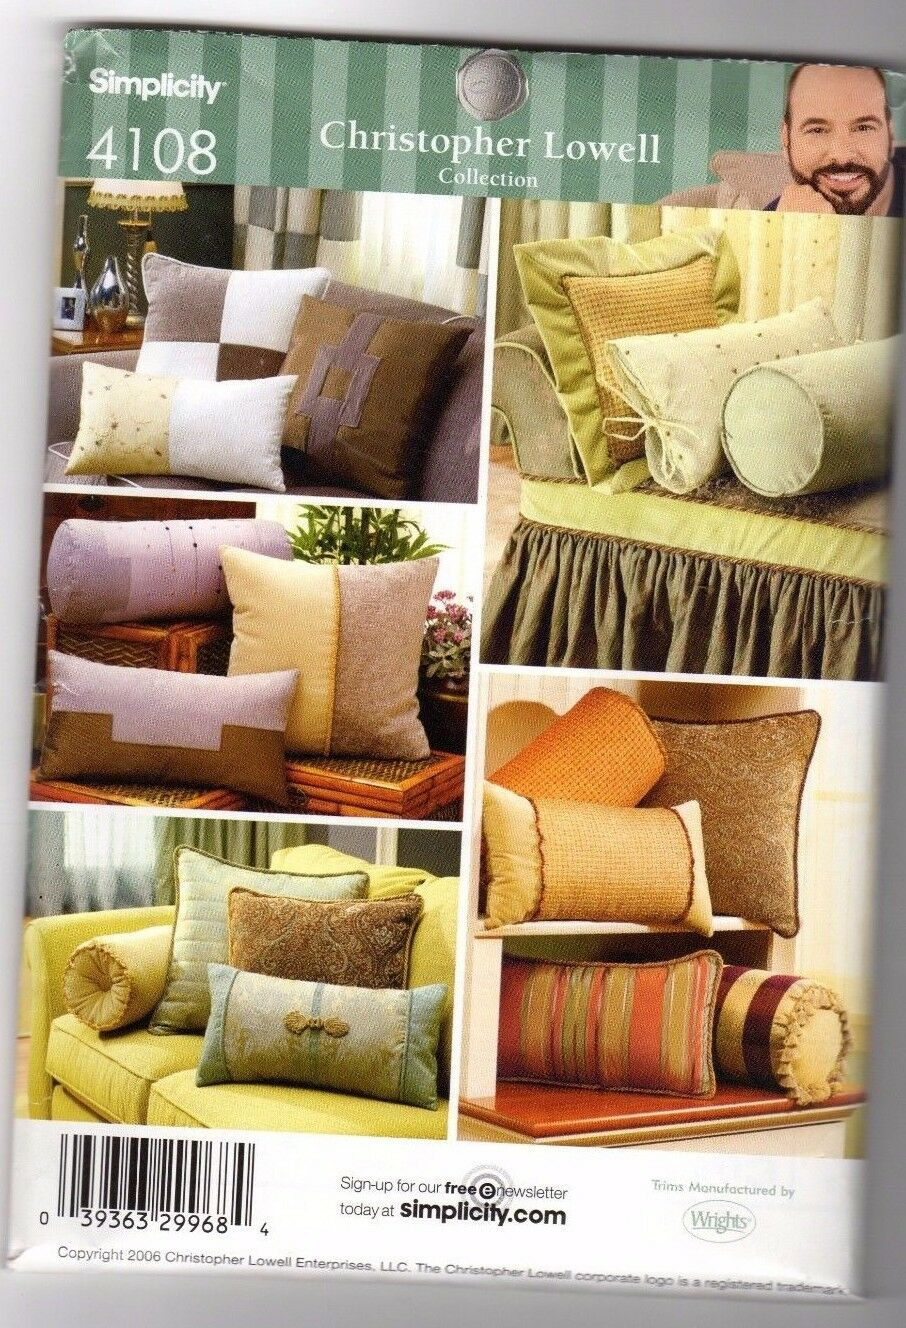 Simplicity Pattern 4108 Christopher Lowell Collection Bolsters ... on christopher lowell seven layers of design, christopher lowell studio makeover, christopher lowell outdoor room,